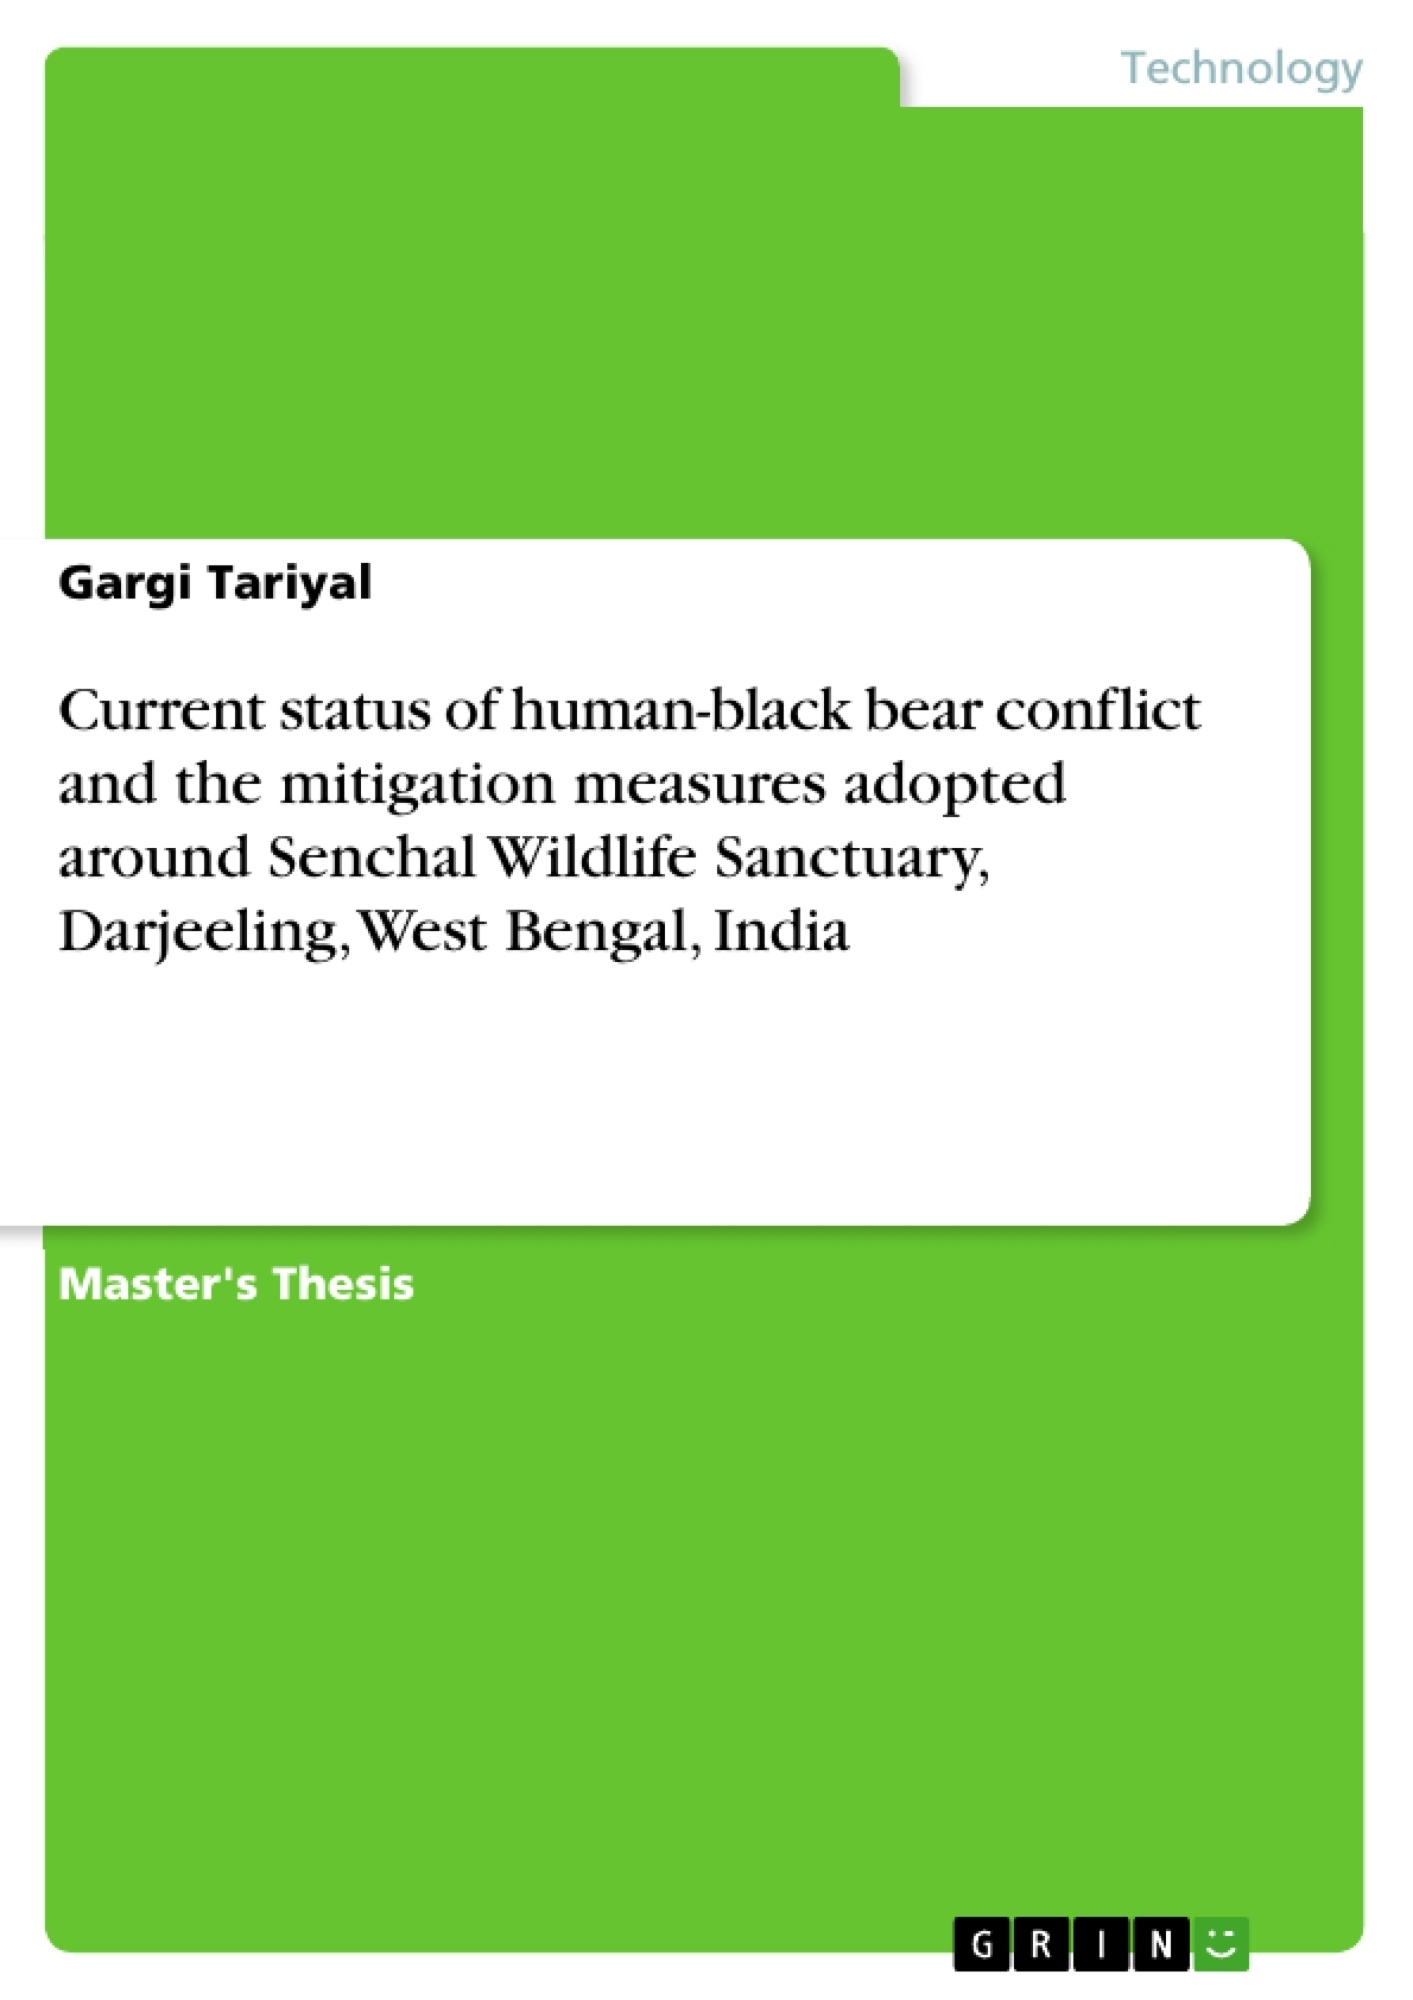 Title: Current status of human-black bear conflict and the mitigation measures adopted around Senchal Wildlife Sanctuary, Darjeeling, West Bengal, India